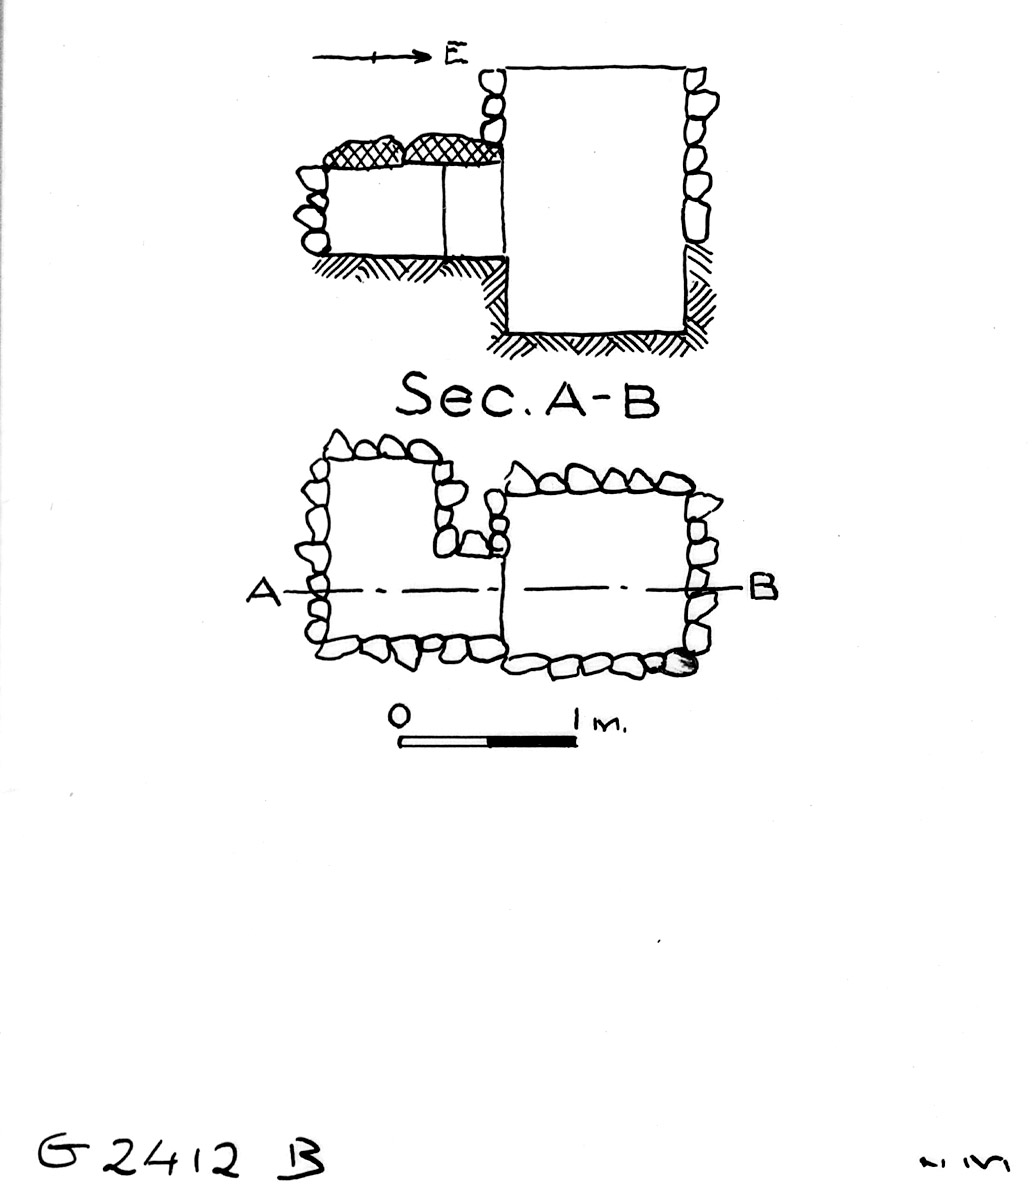 Maps and plans: G 2412, Shaft B